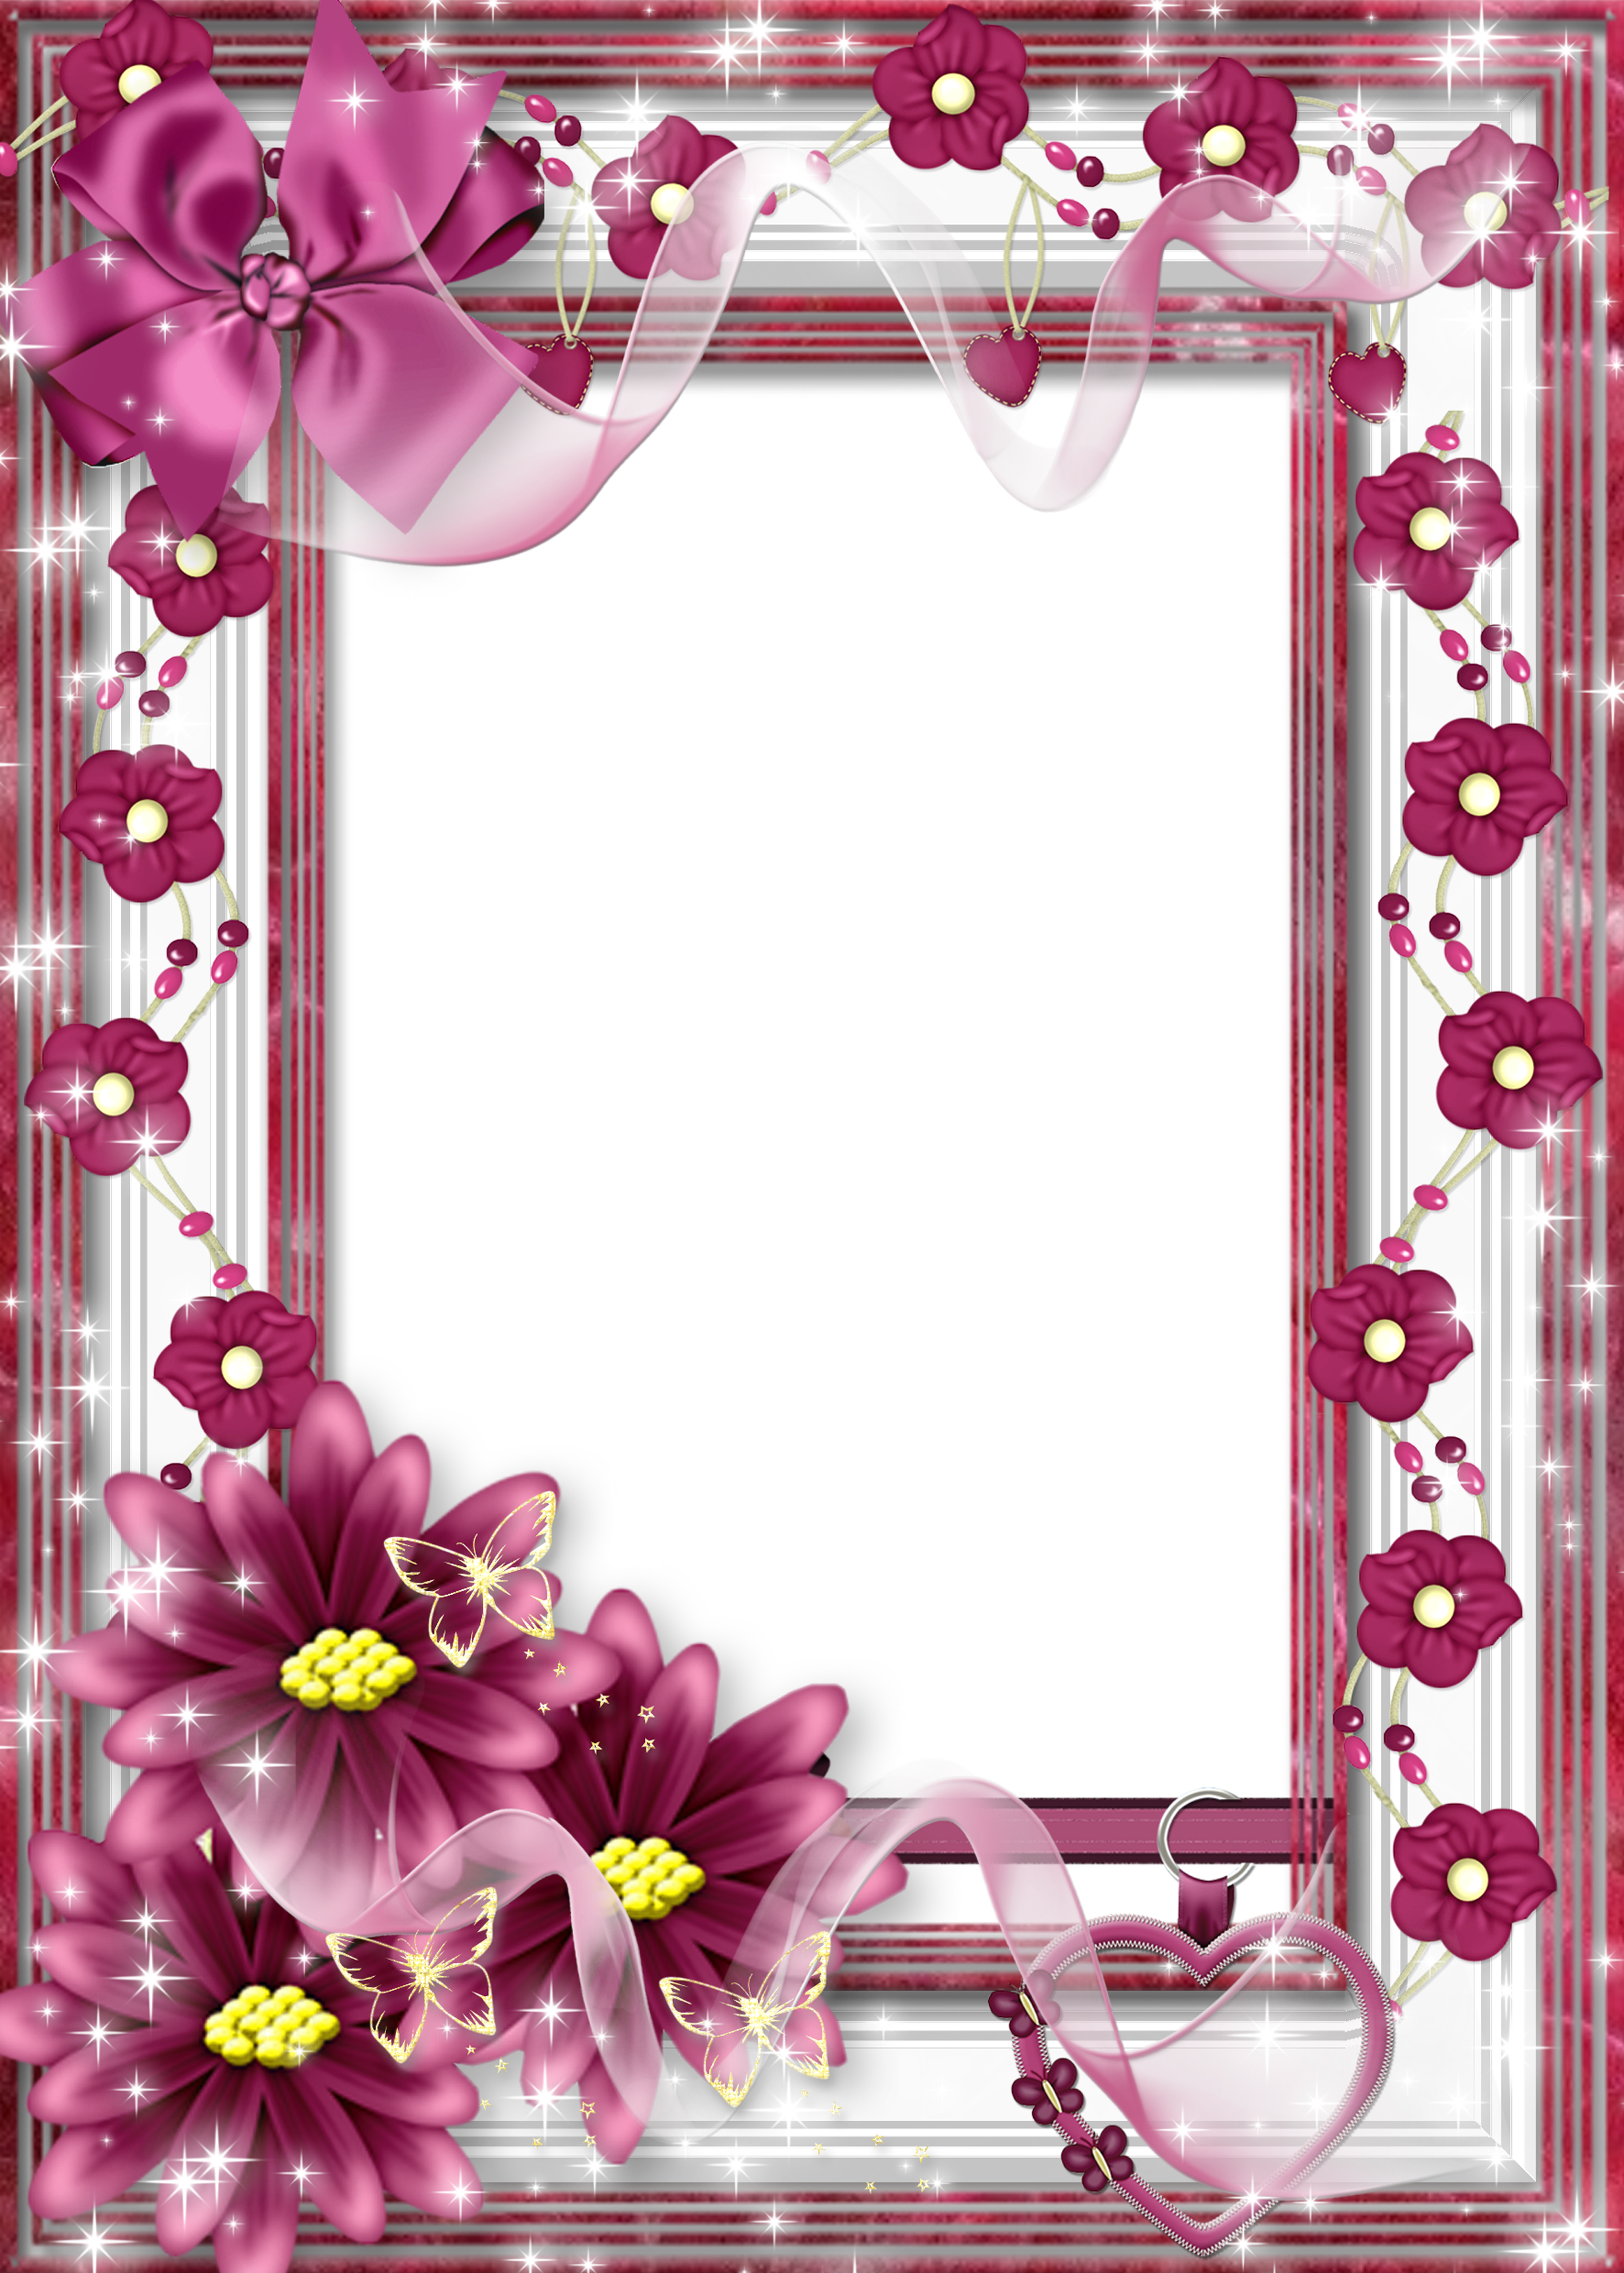 Beautiful frames clipart image free download Beautiful Flower Transparent Frame with Pink Bow | Gallery ... image free download